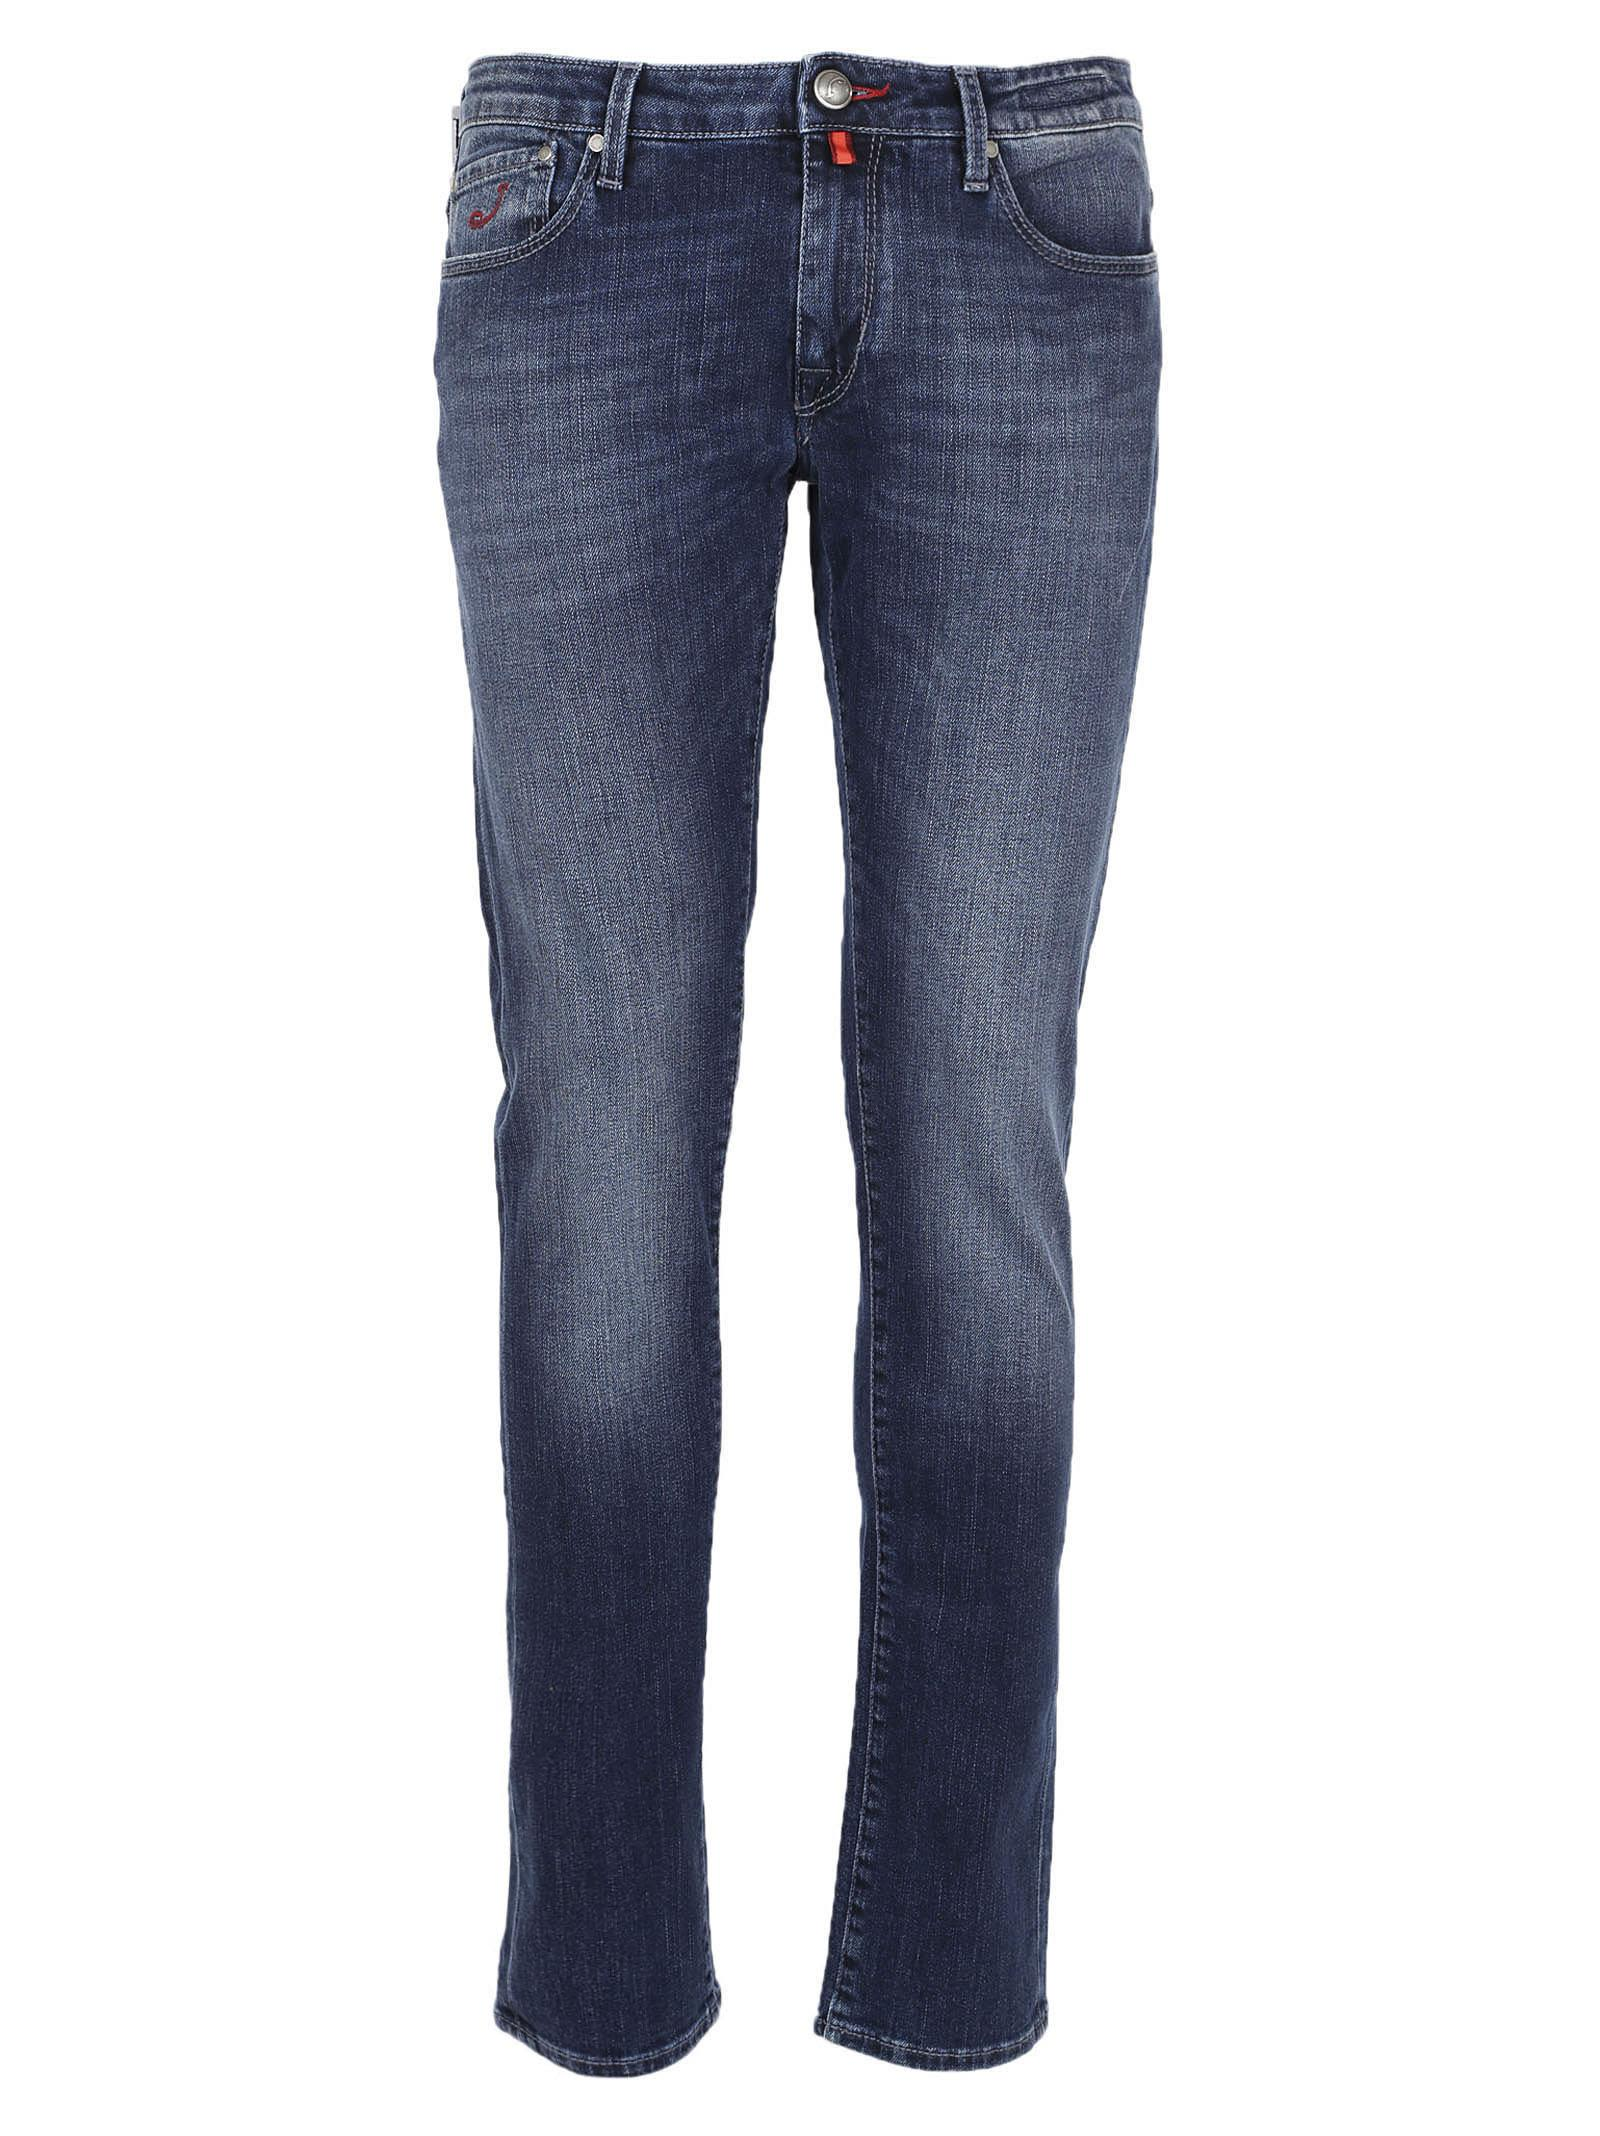 Jacob Cohen Skinny Fit Faded Jeans